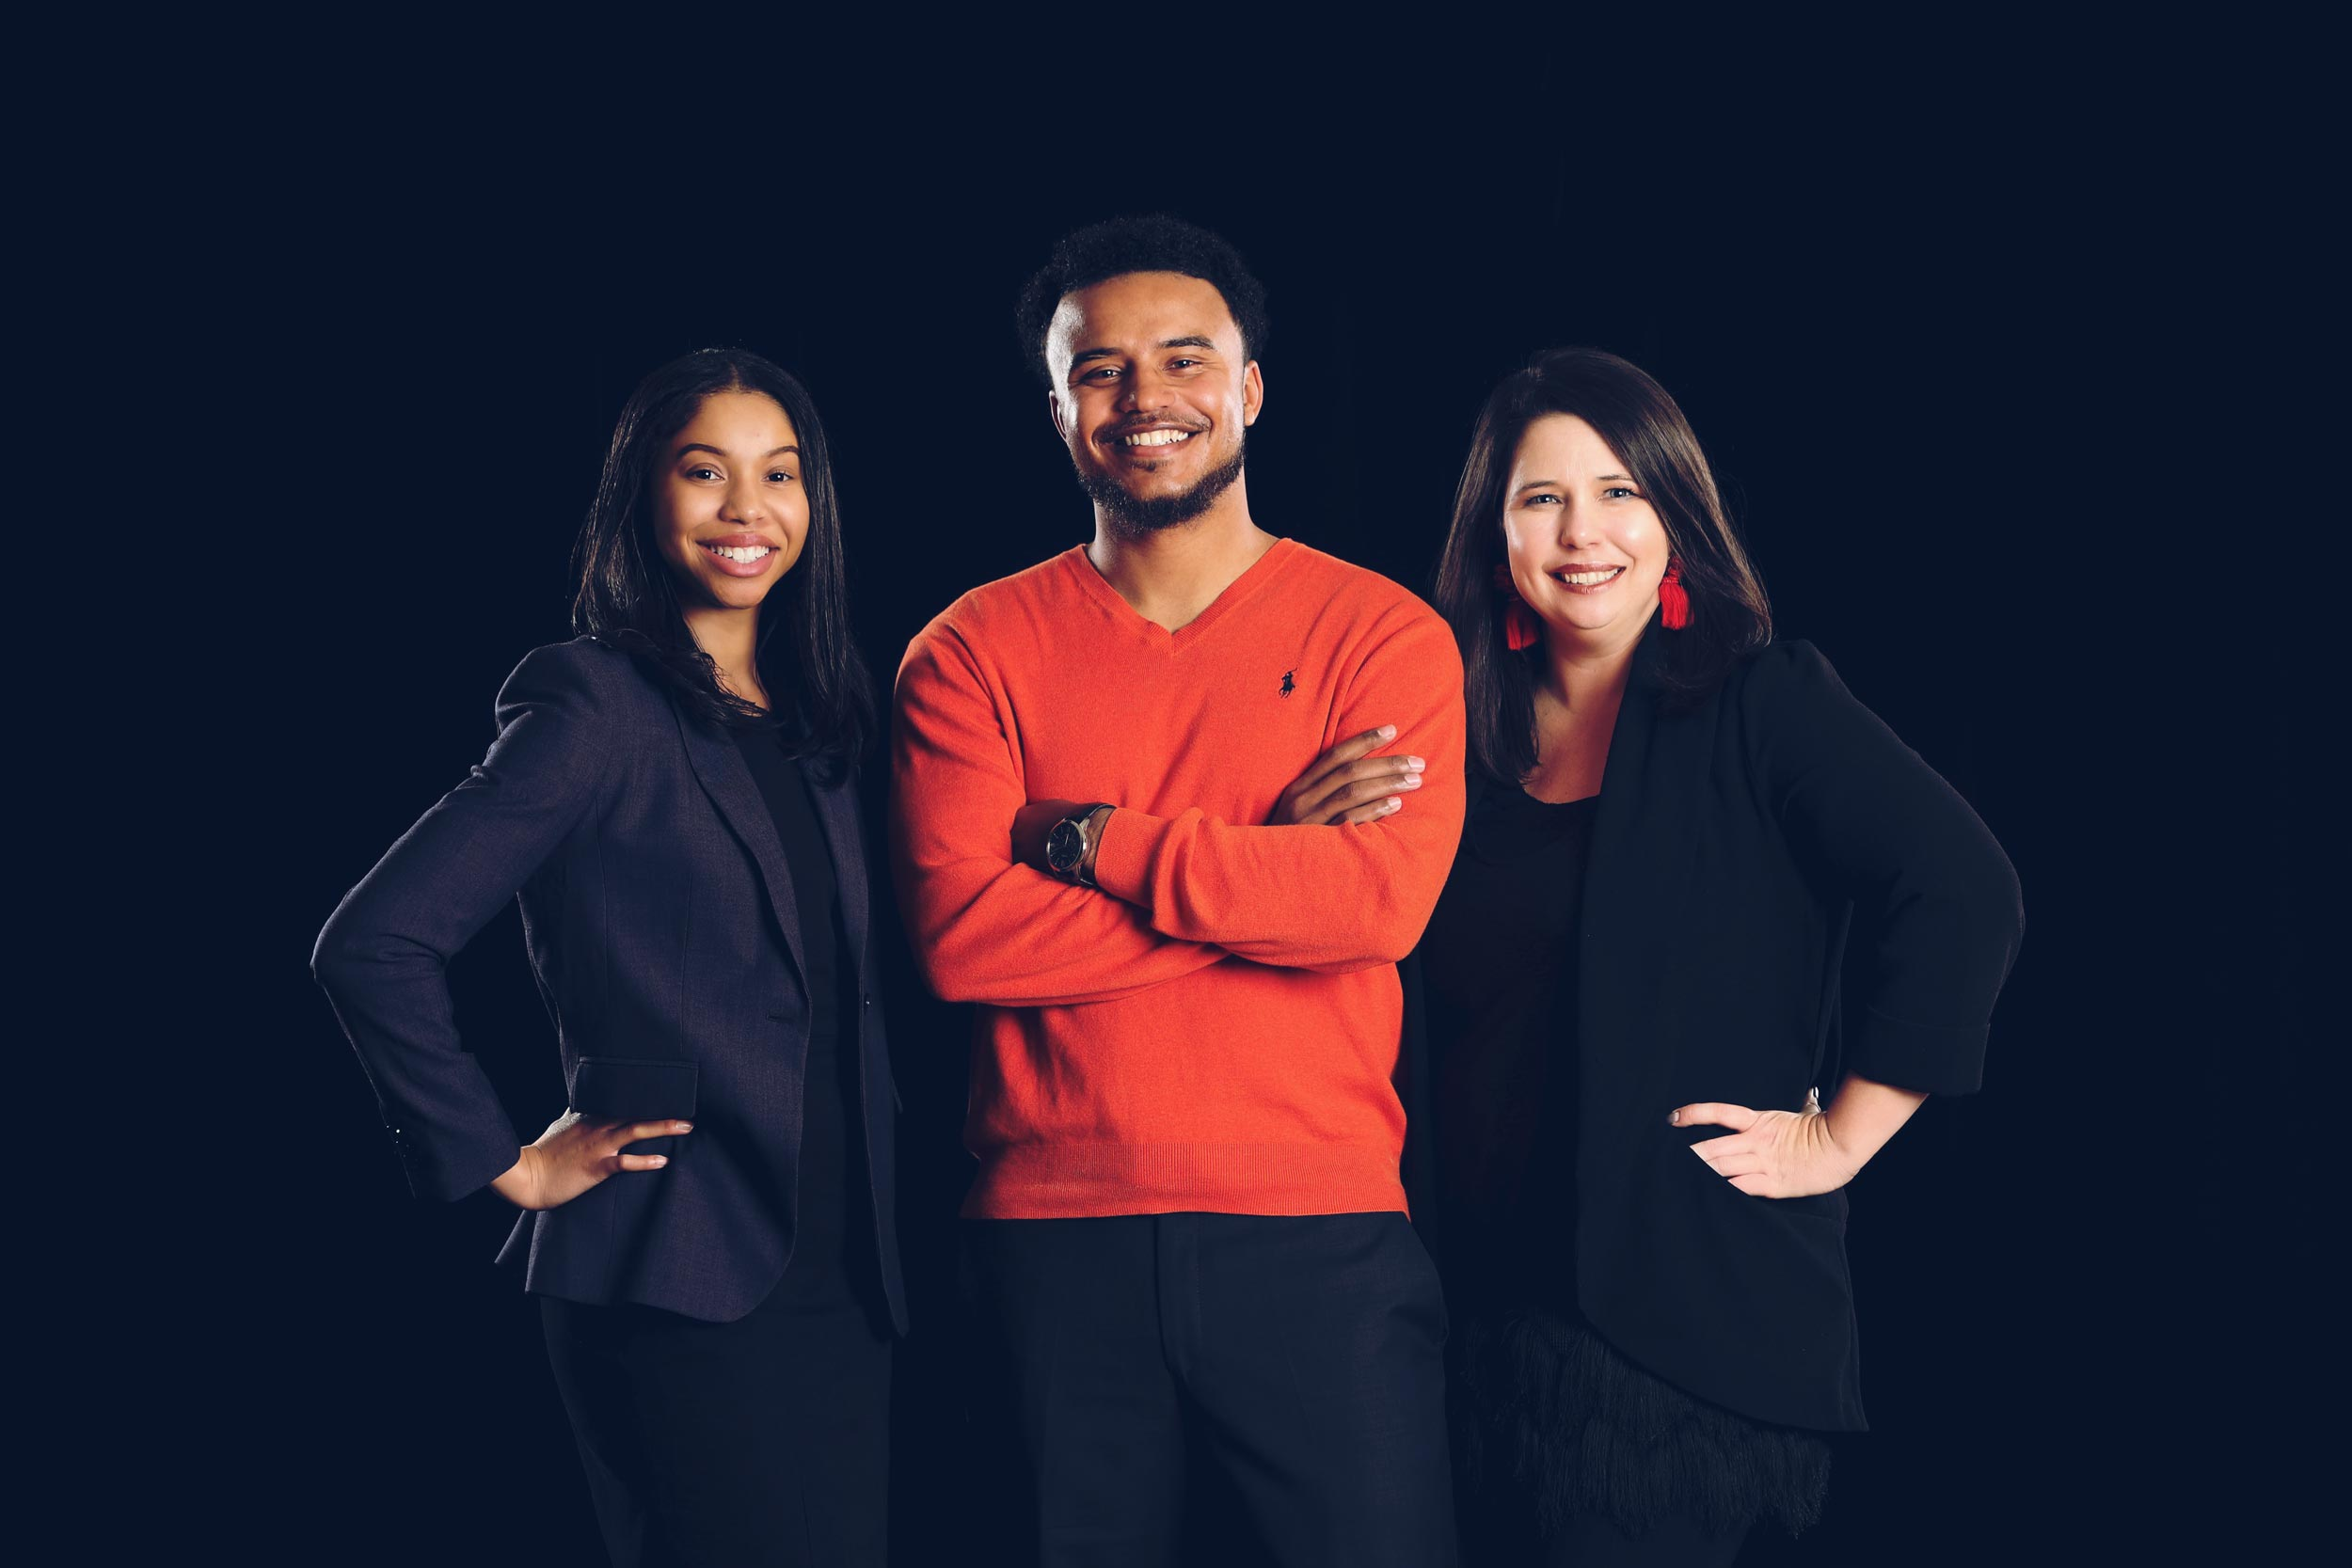 UVA alumni Kiana Hairston, Rijo Walker and Allison Doughty are gearing up for this year's College Football Playoff.